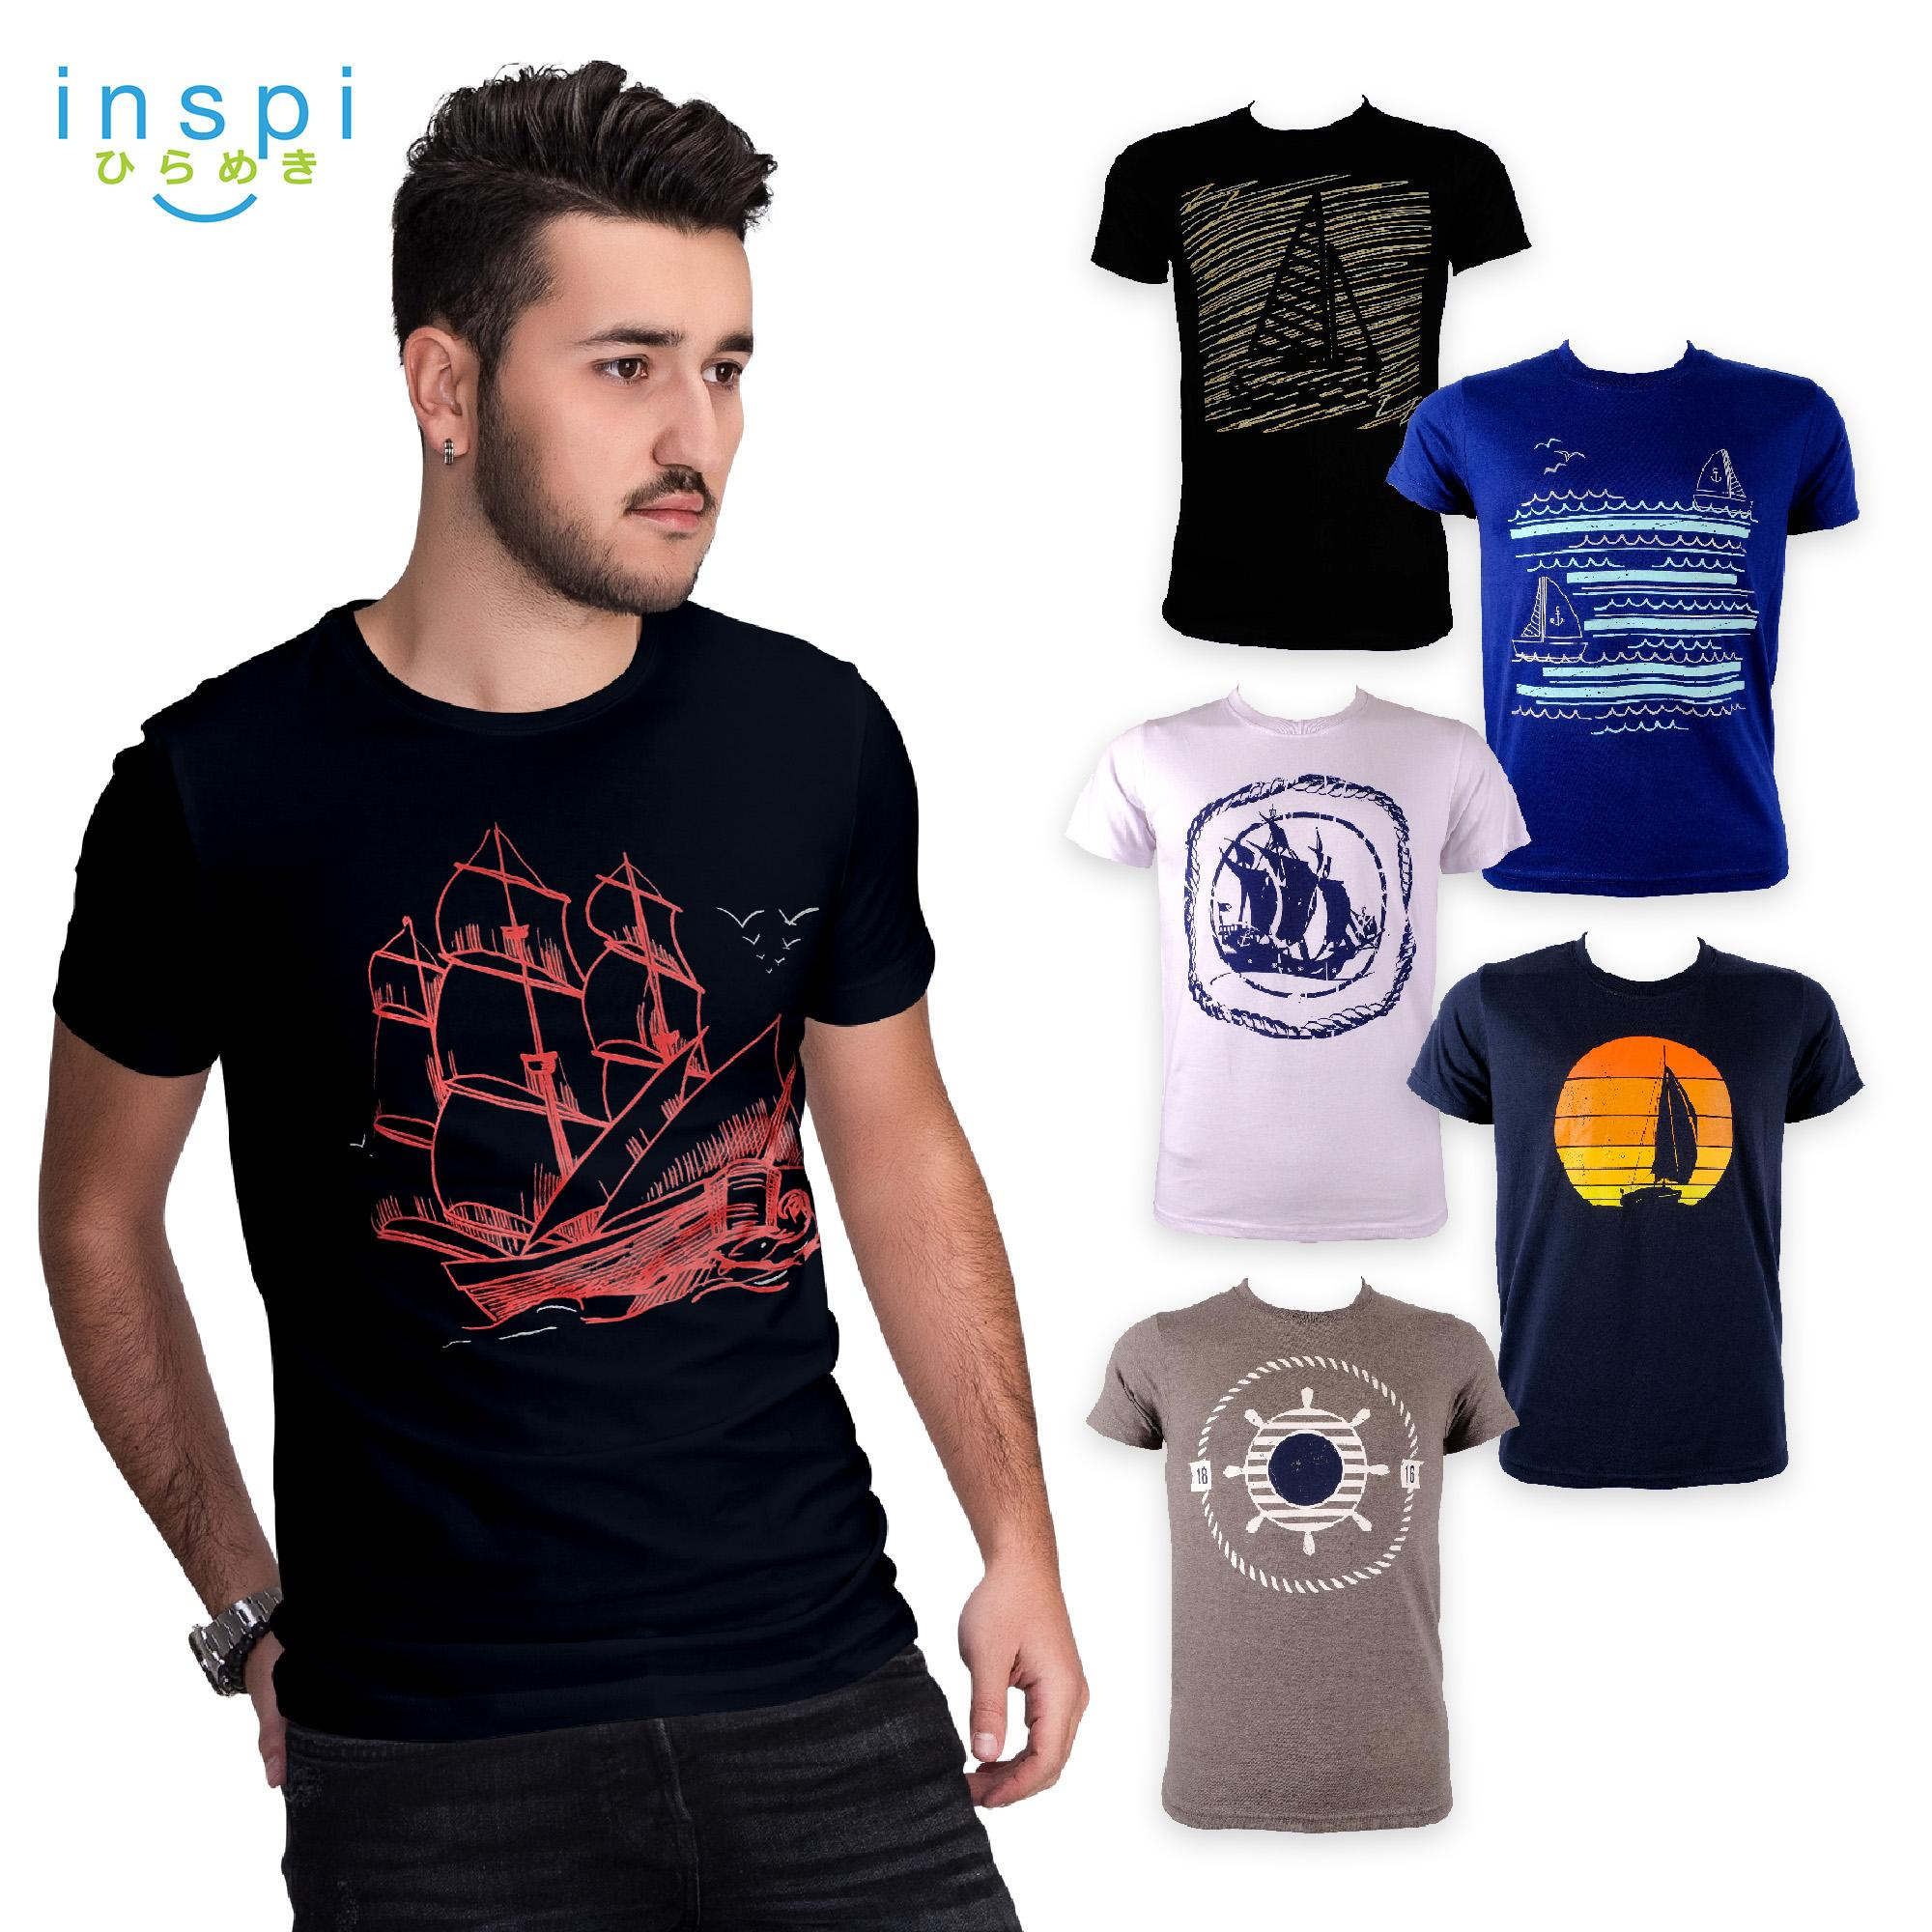 1e75cb6ccc6a INSPI Tees Sailing Collection tshirt printed graphic tee Mens t shirt shirts  for men tshirts sale